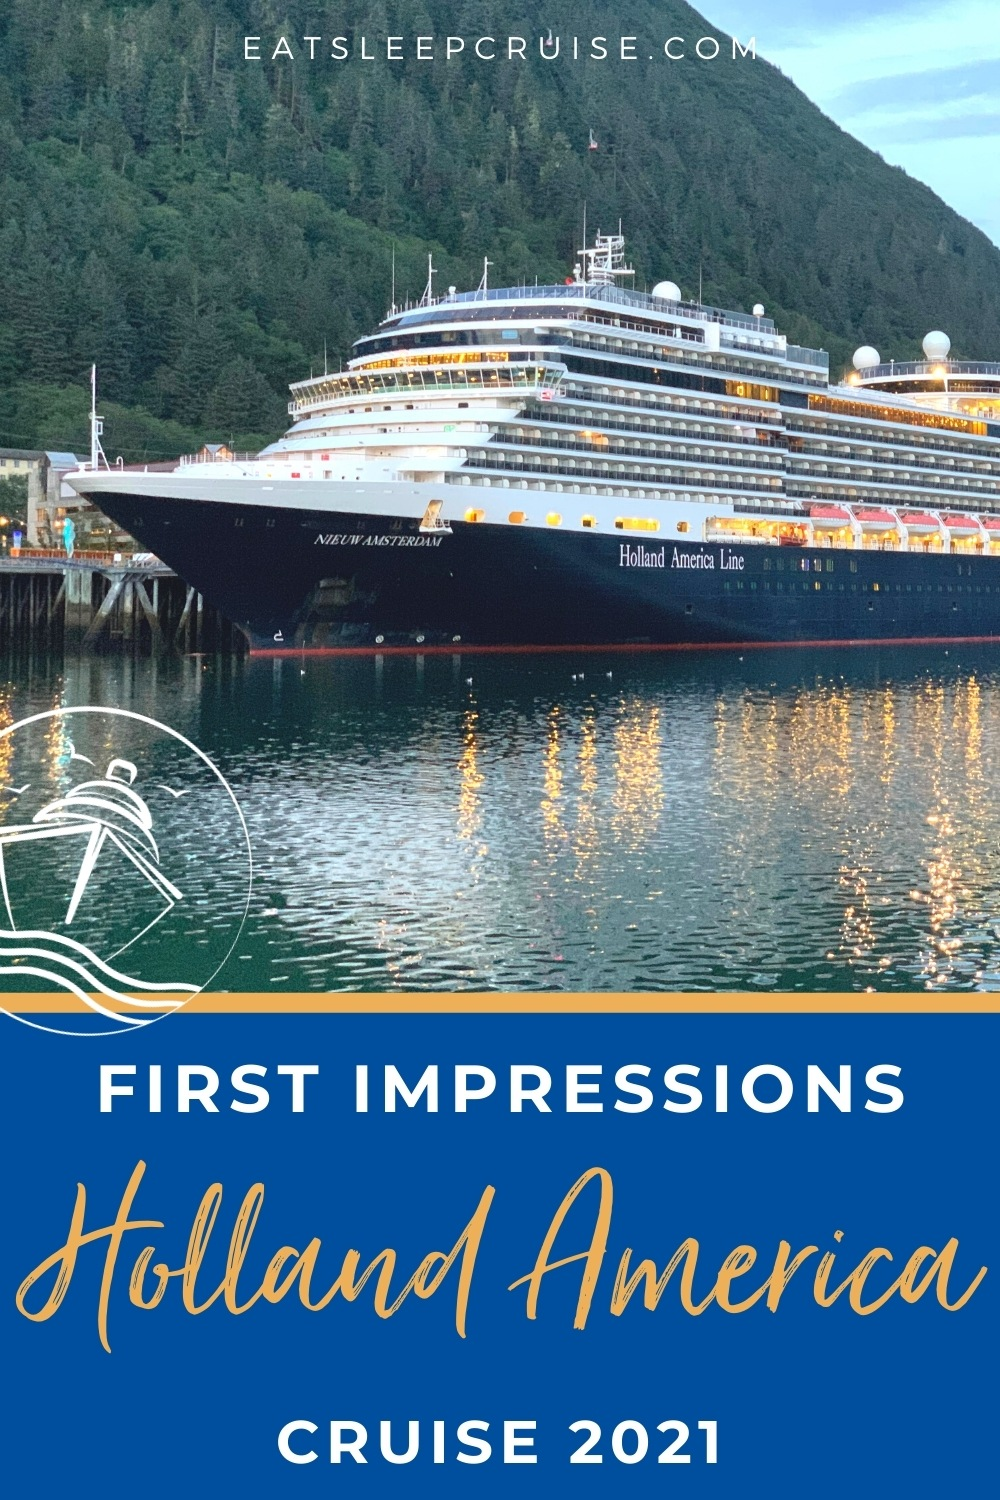 first impressions of Holland America Line cruise